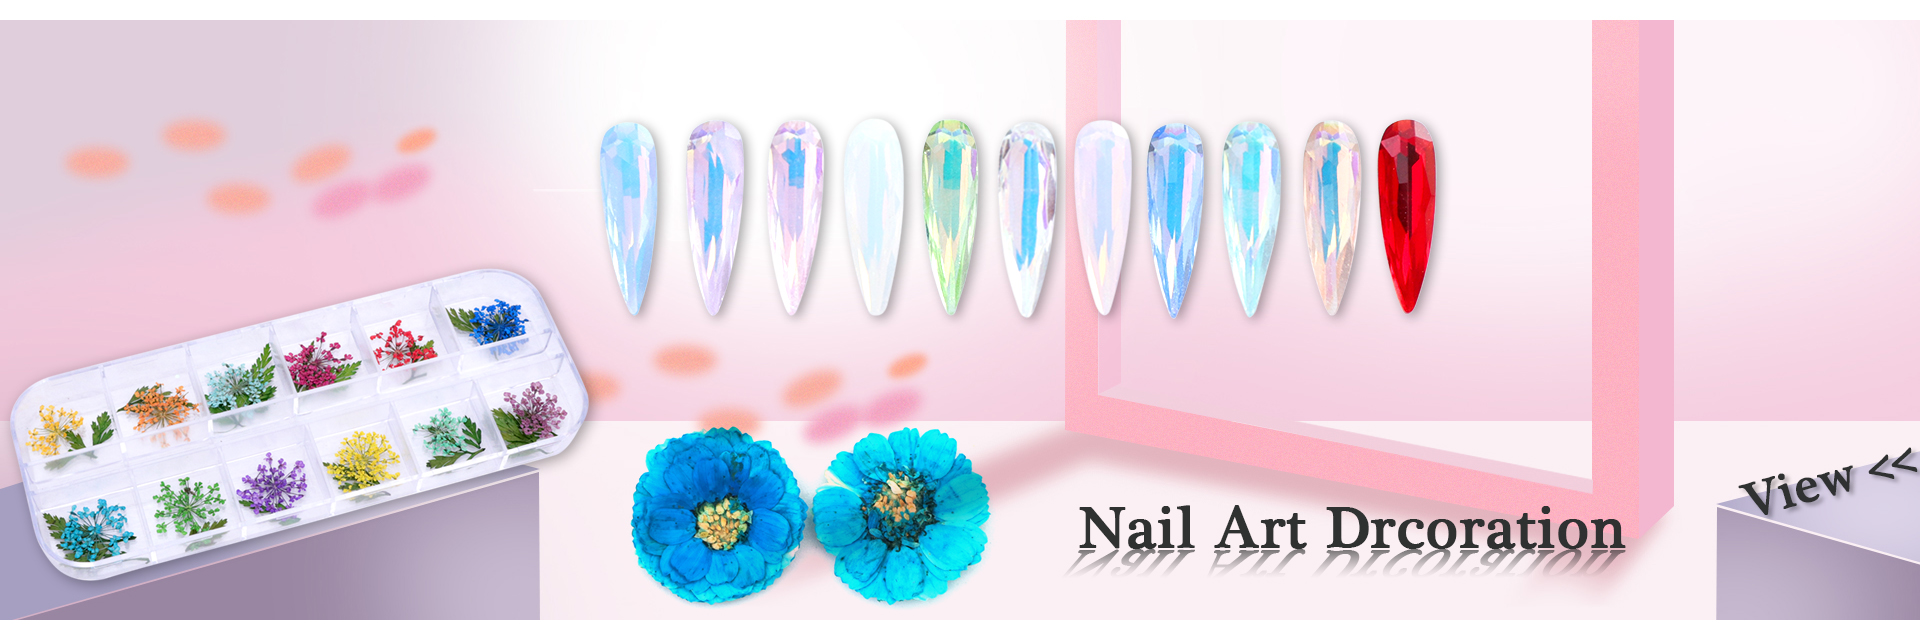 Jiji Nail Art Products - Small Orders Online Store, Hot Selling and ...